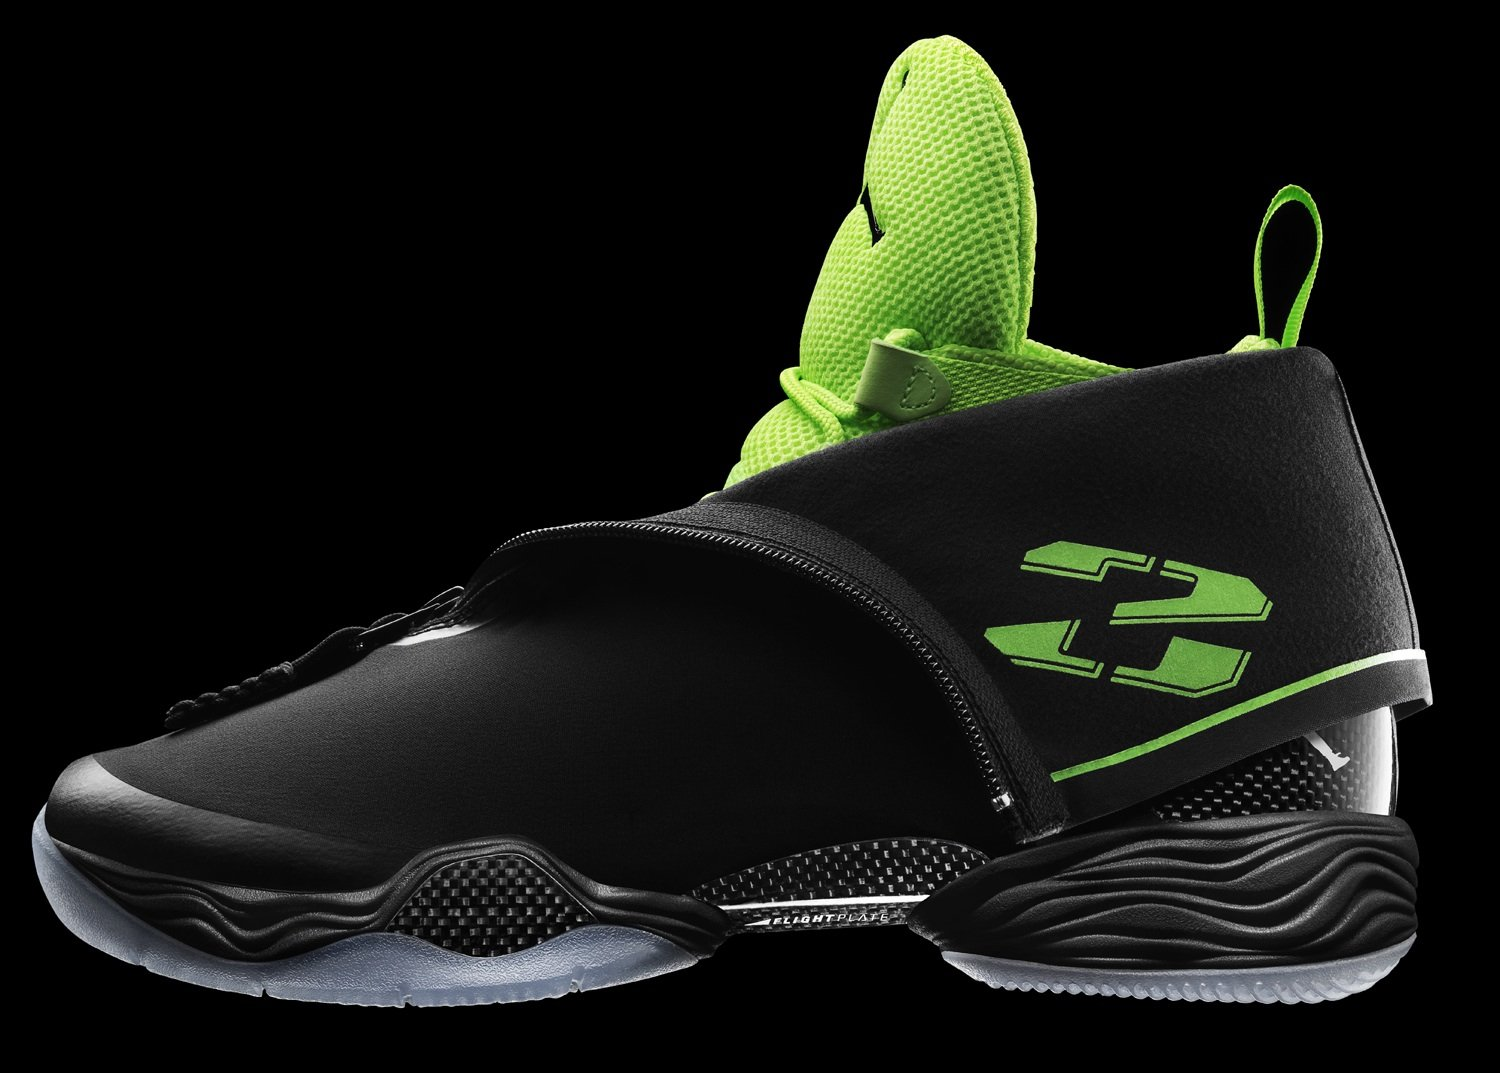 los angeles 2b986 23dce The Air Jordan XX8 will release in Houston on February 15, 2013, followed  by a nationwide release on February 16, 2013. Retail price is  250.